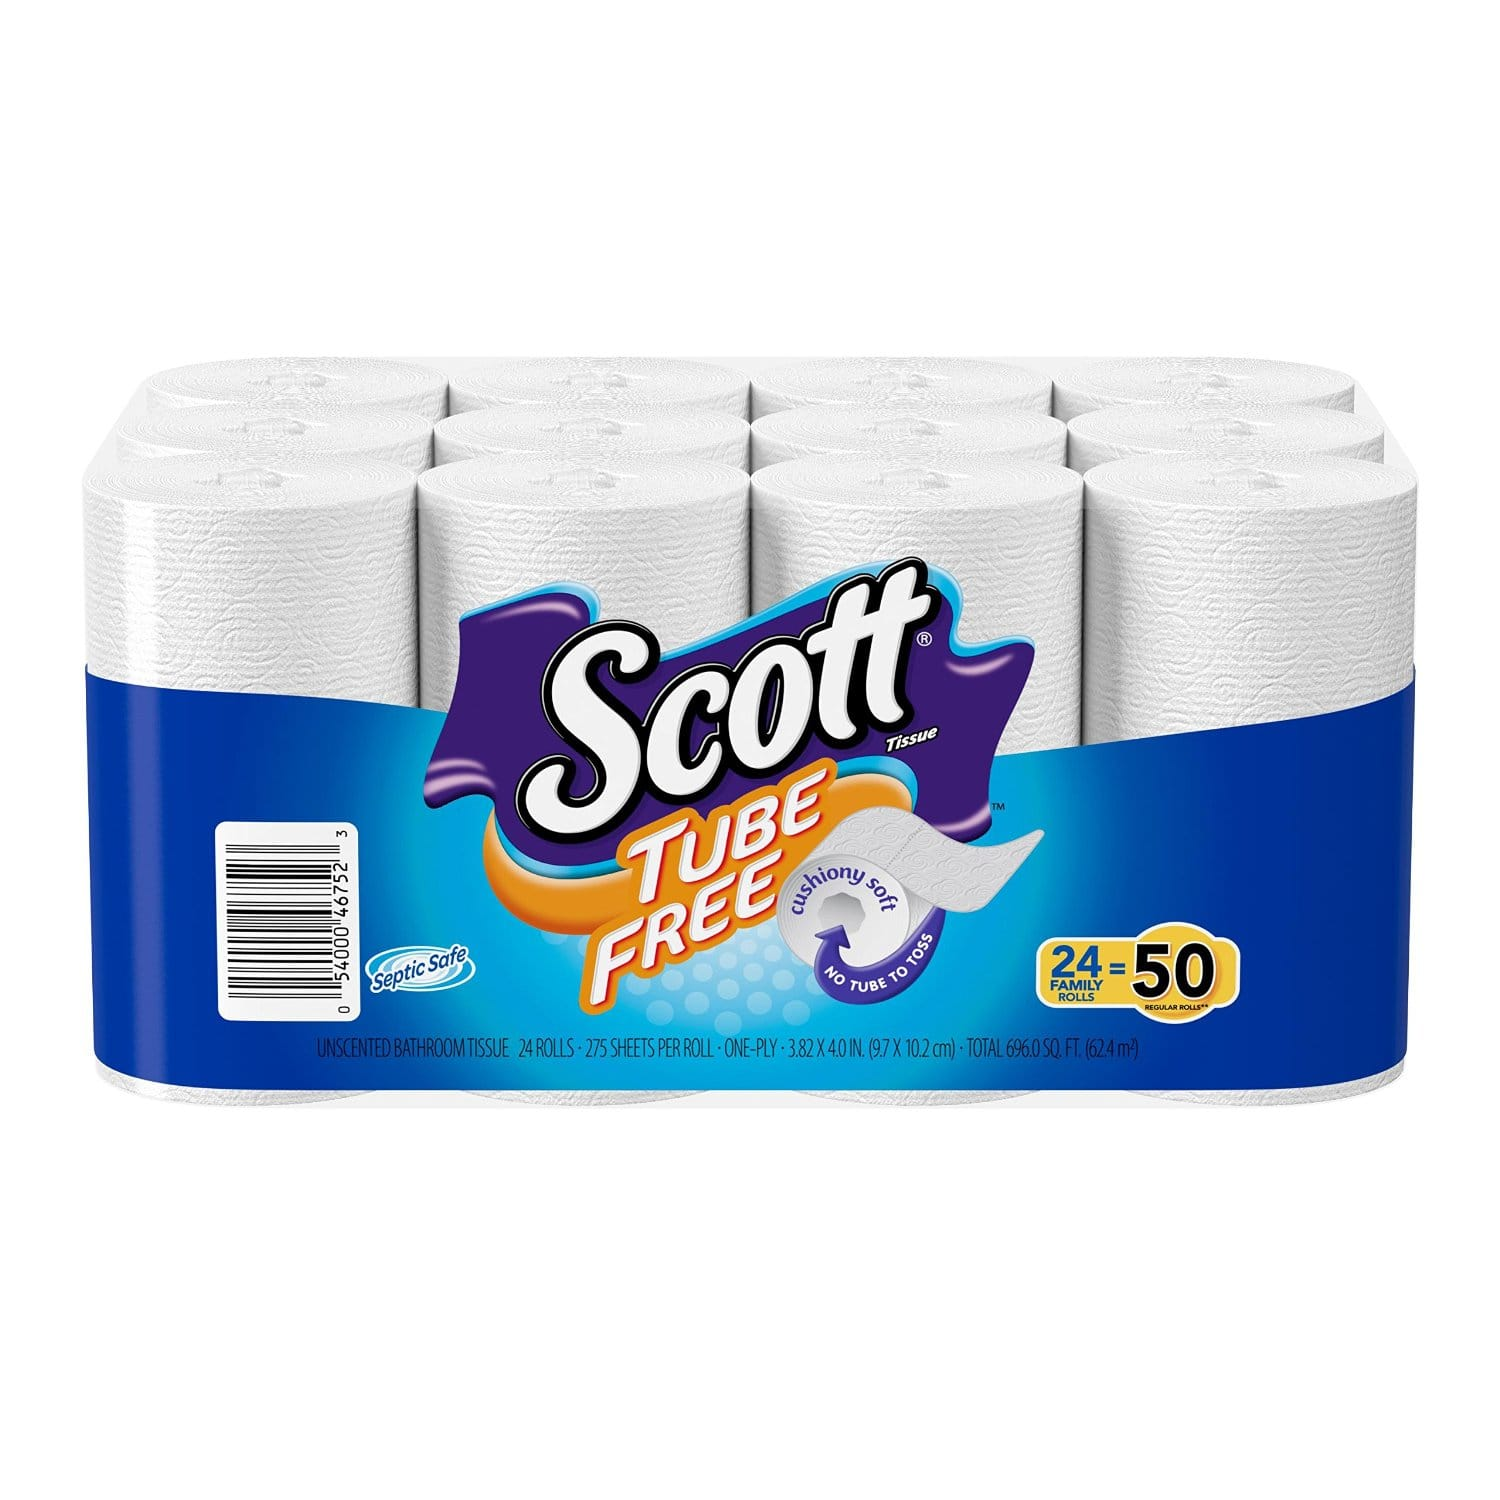 24-count of Scott Tube Free Toilet Paper Bath Tissue (Double Plus Roll) $8.49 or Less + Free Shipping Amazon.com